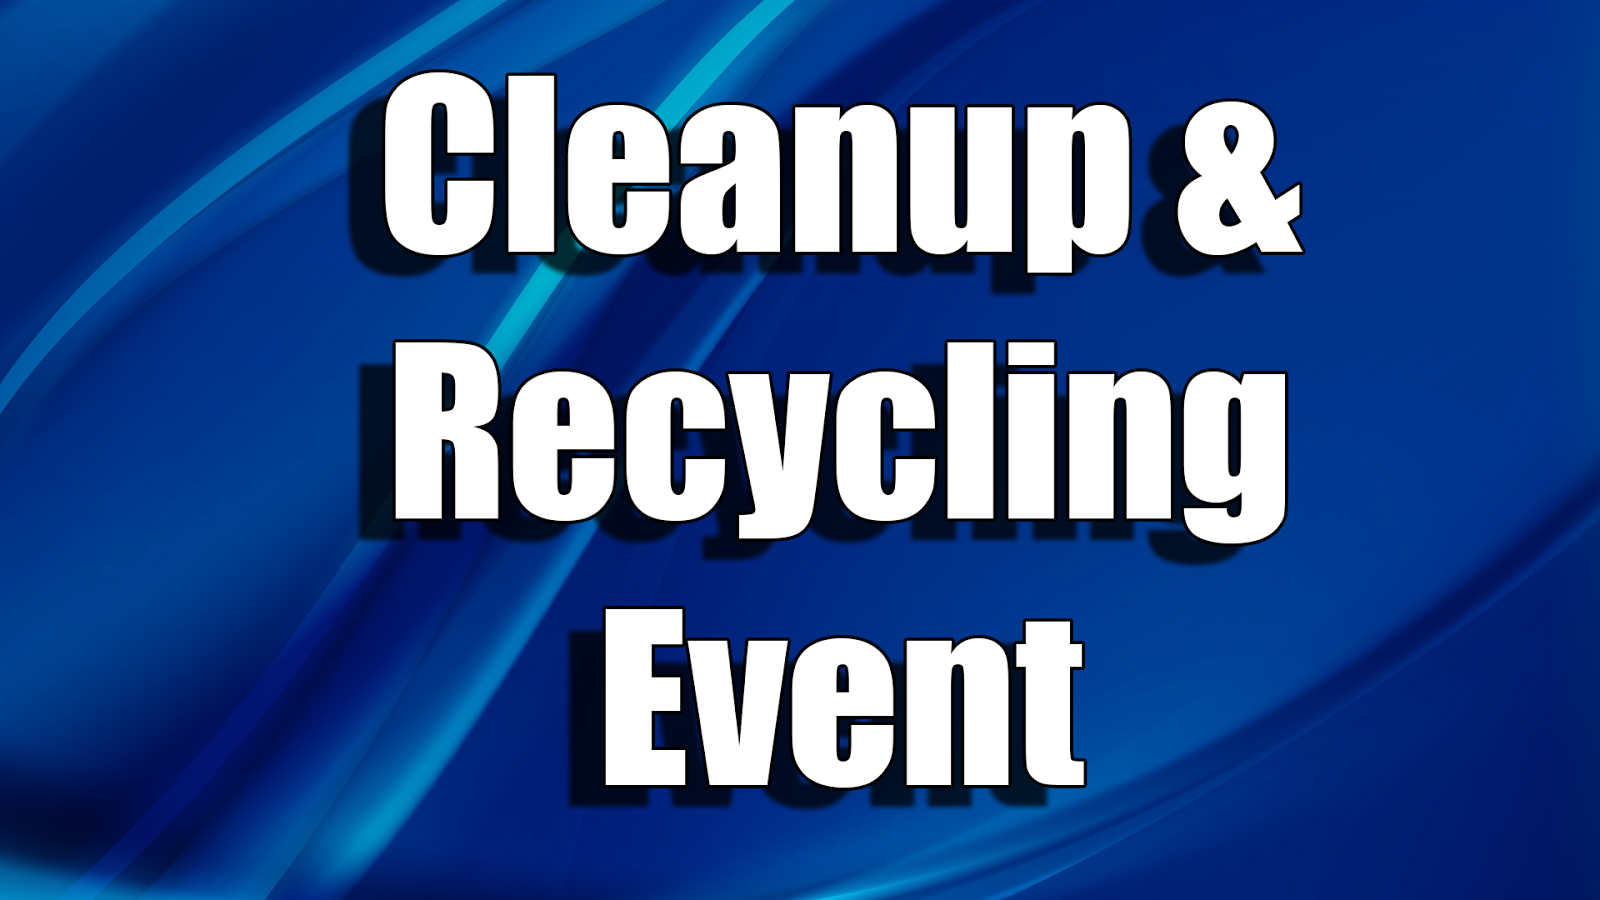 cleanuprecycling